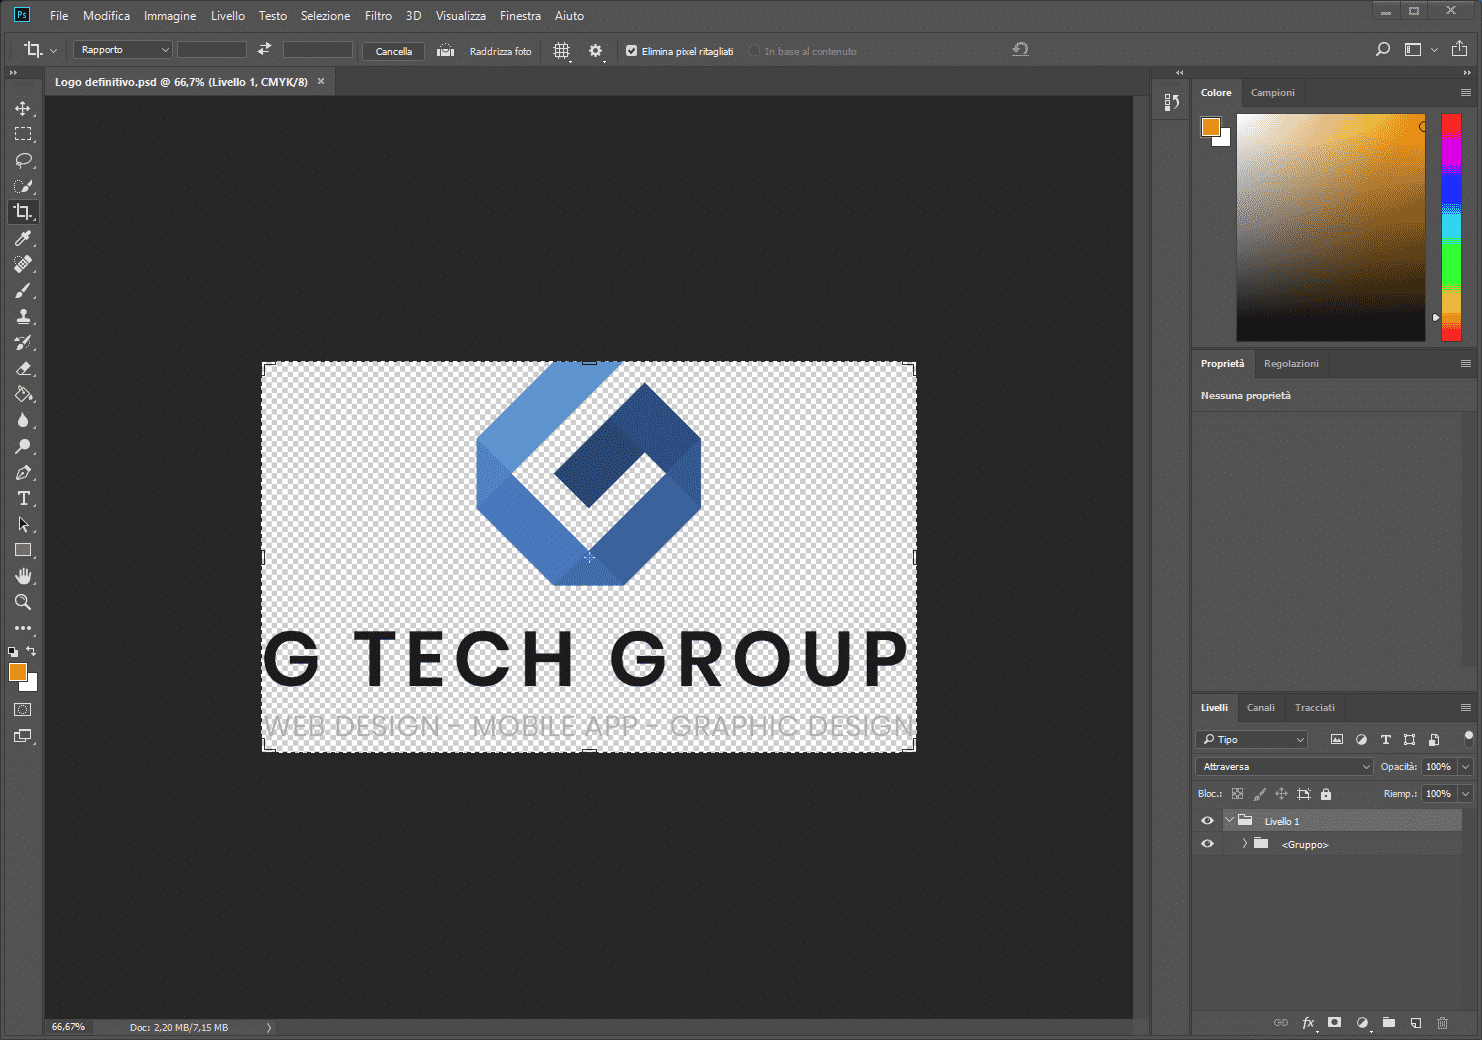 Adobe Photoshop cc adobe photoshop cc - Photoshop con logo G Tech Group - Adobe Photoshop cc, cos'è e come utilizzarlo